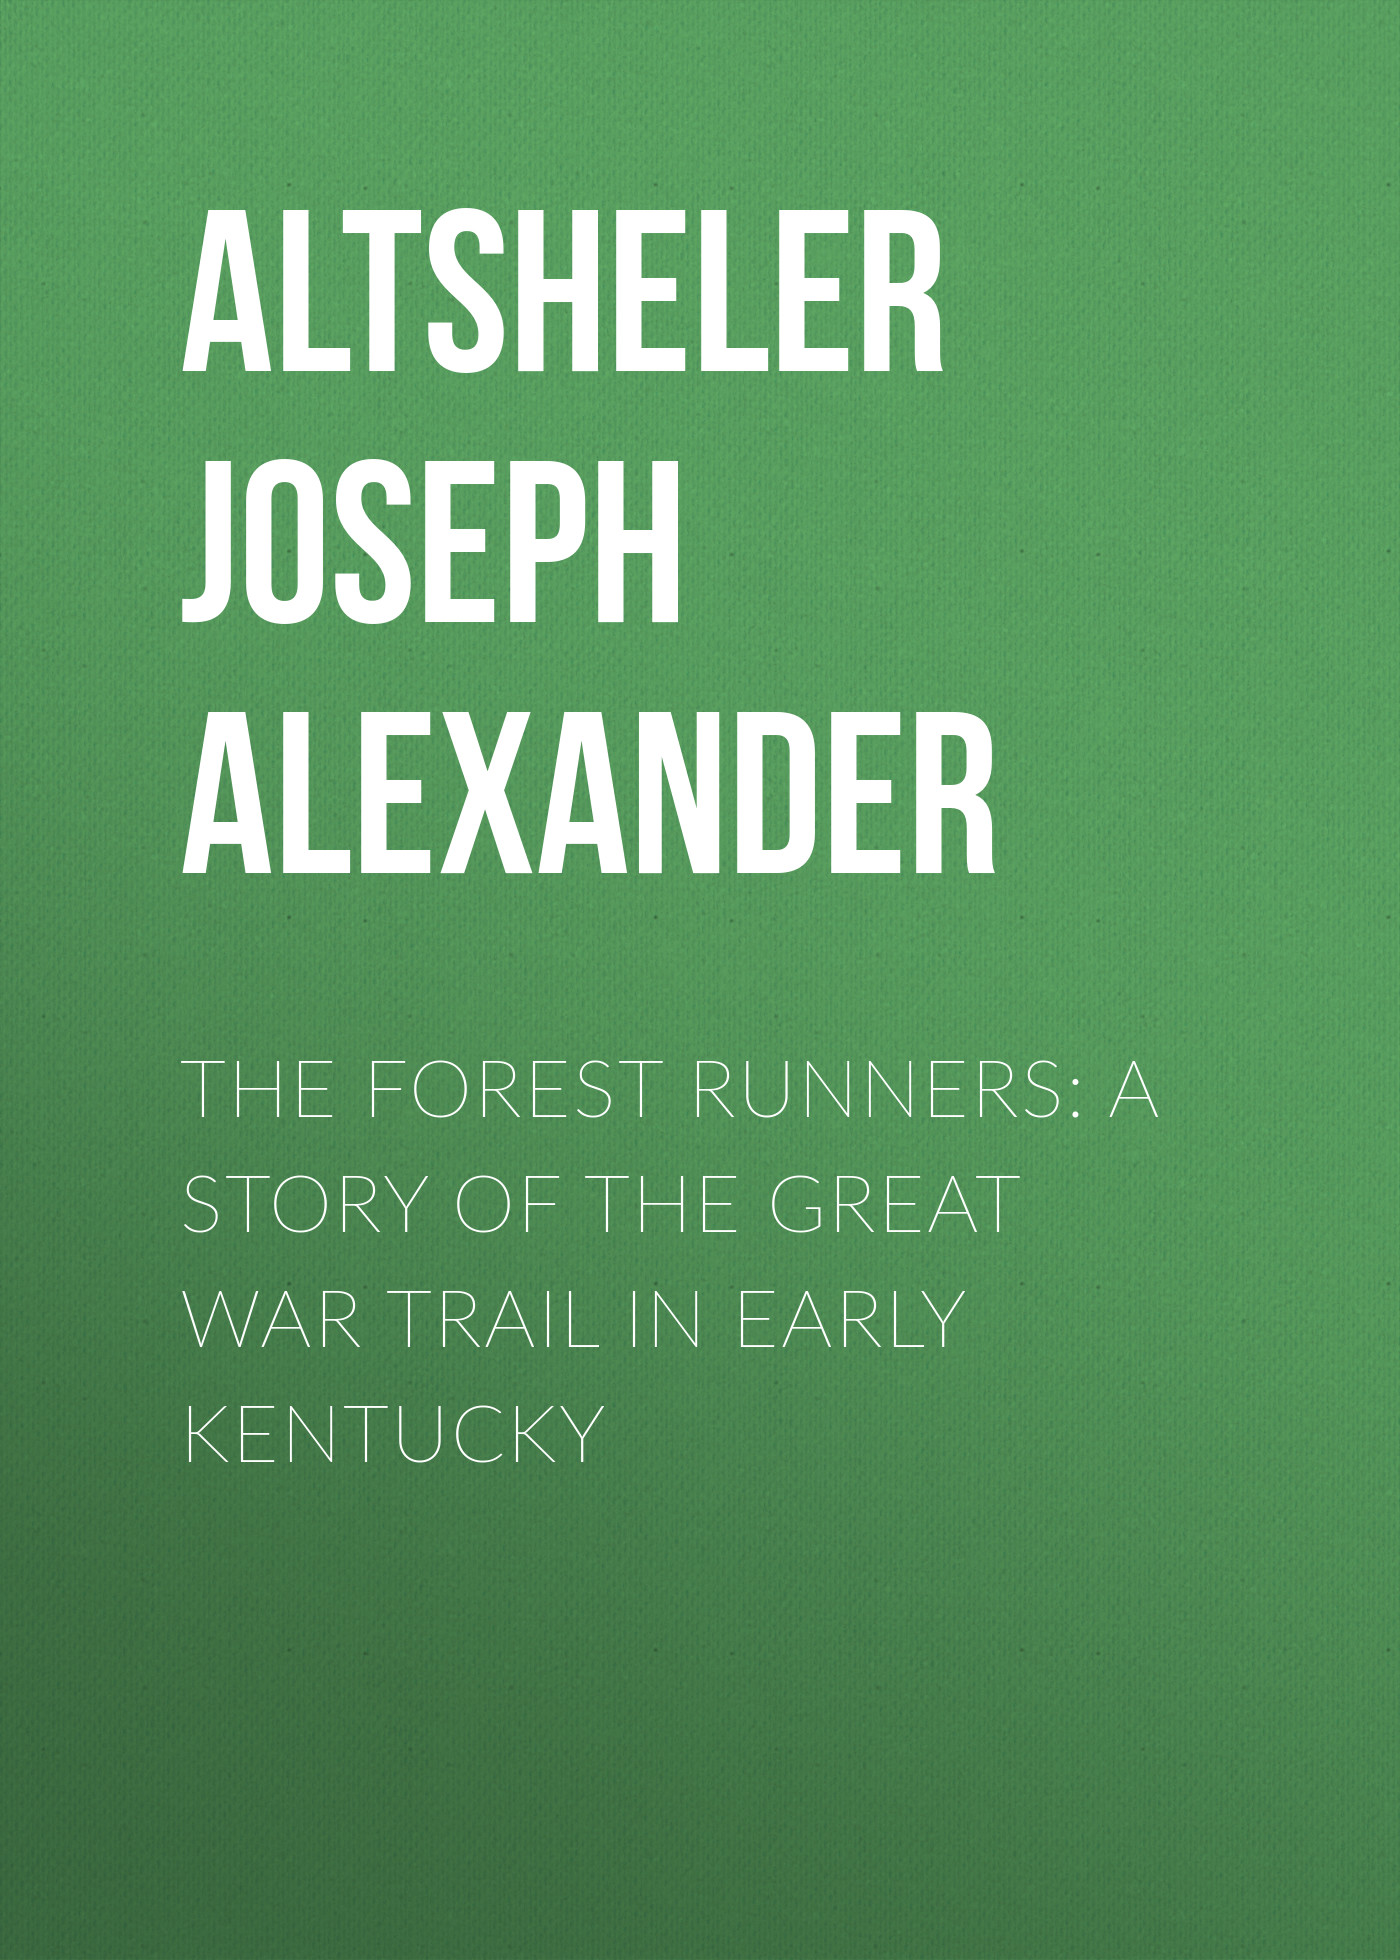 Altsheler Joseph Alexander The Forest Runners: A Story of the Great War Trail in Early Kentucky sally in the forest